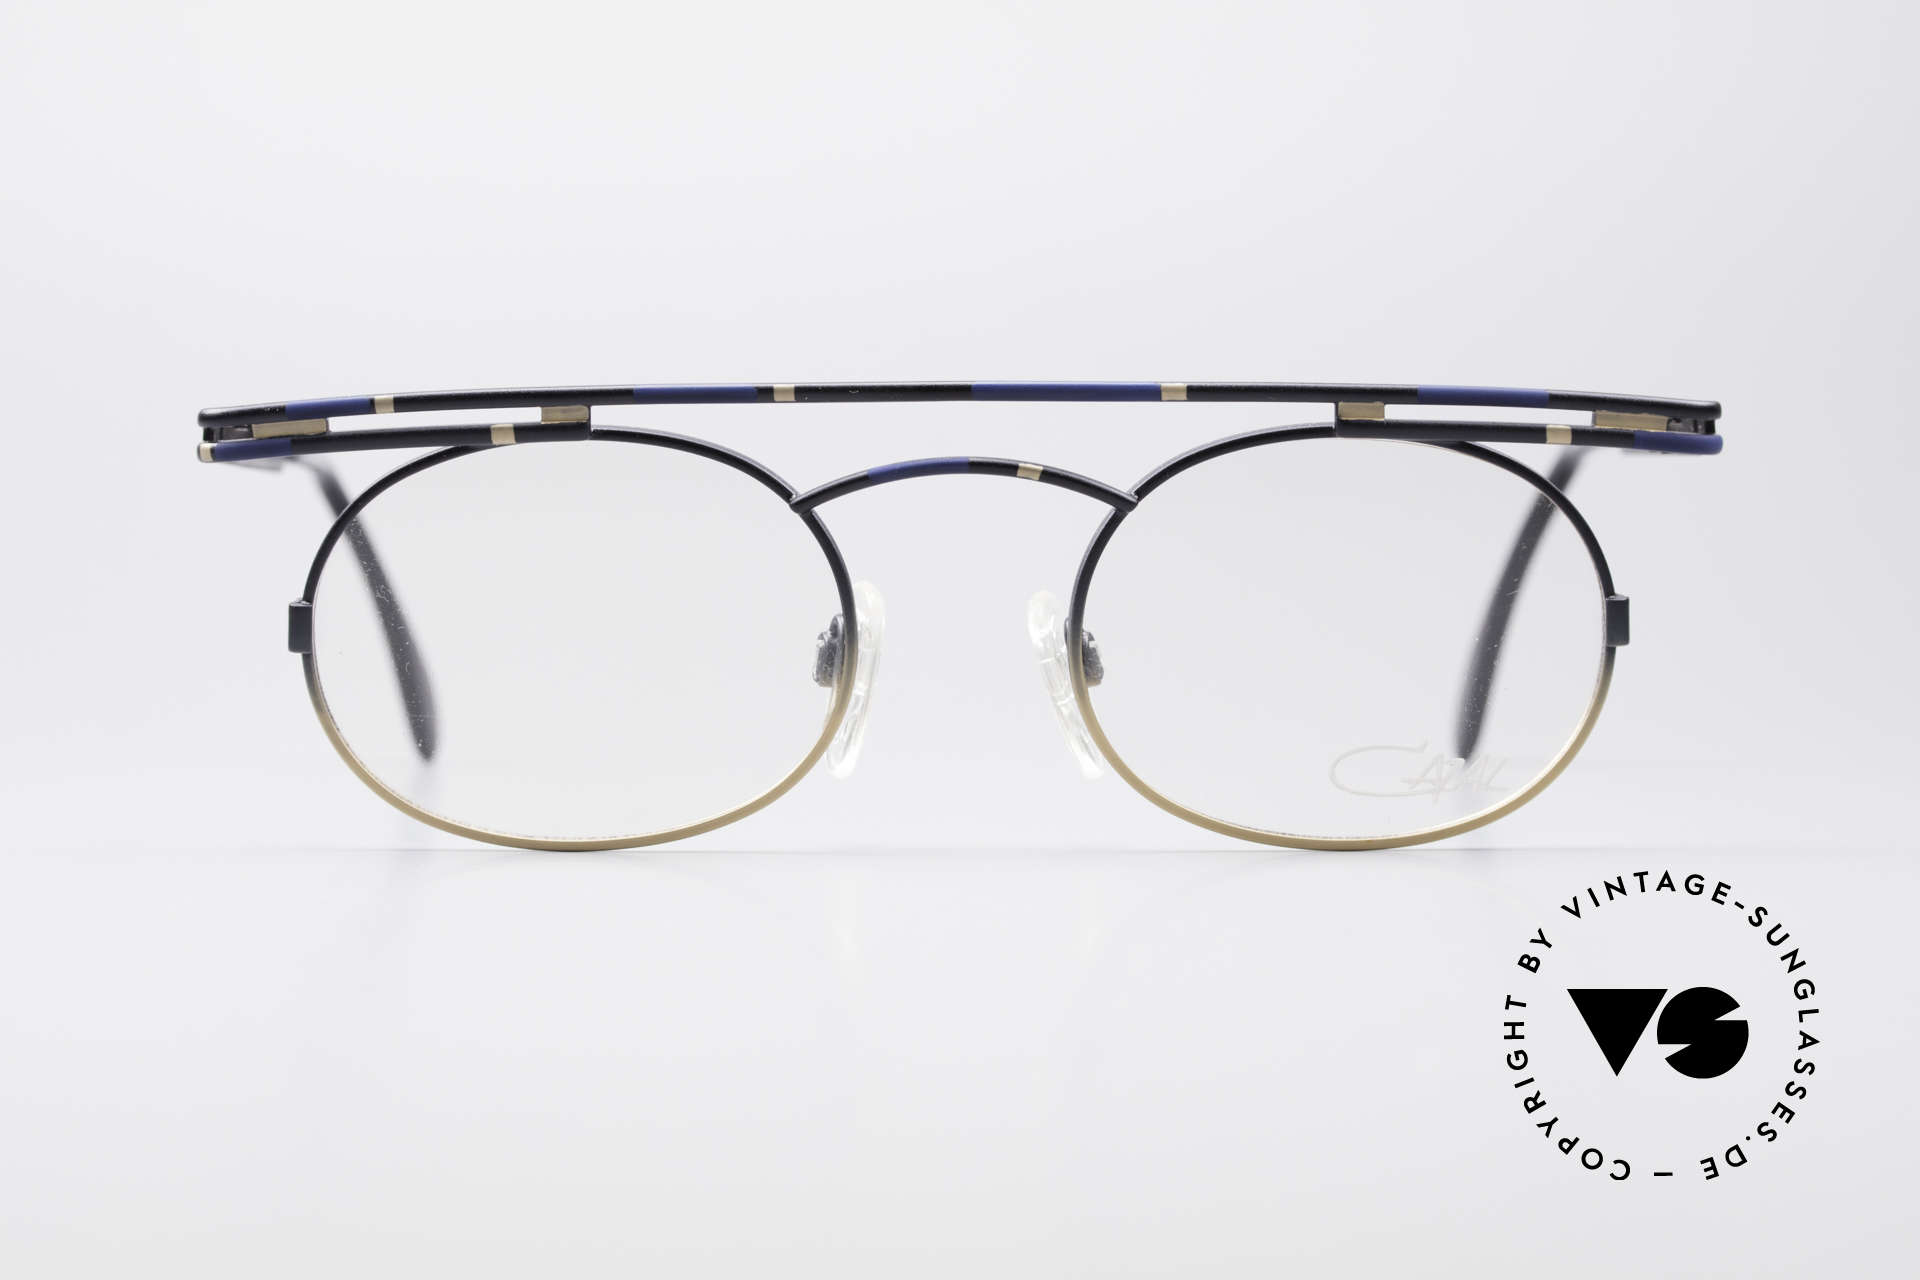 Cazal 761 True Vintage Frame NO Retro, angular & round at the same time; a real eye-catcher, Made for Men and Women